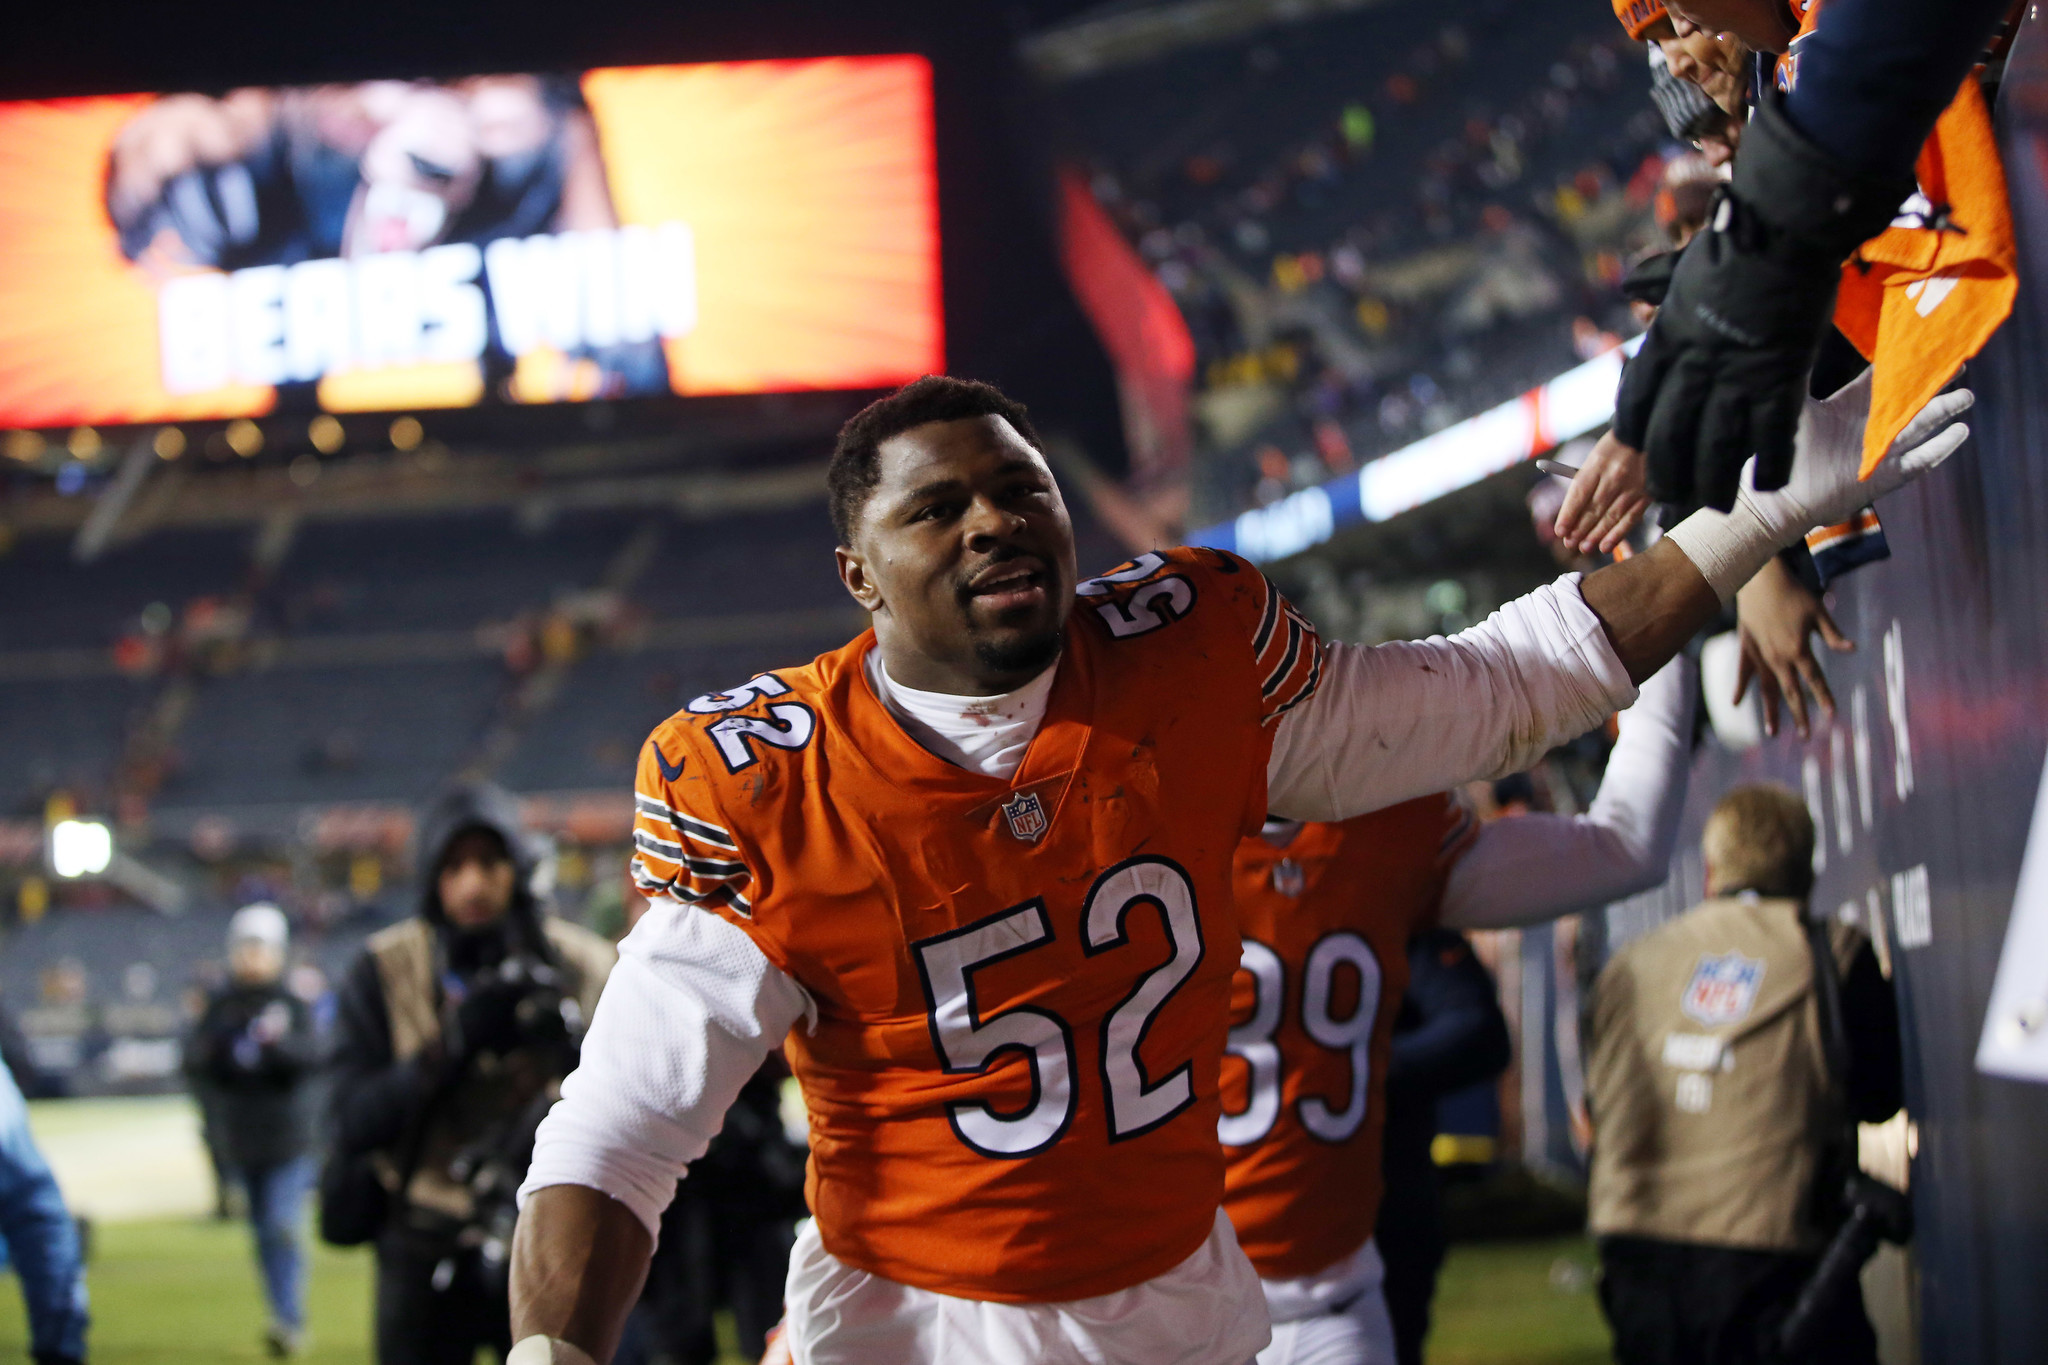 b120875cda5 Khalil Mack greets fans after a November win over the Vikings. (Brian  Cassella/Chicago Tribune)